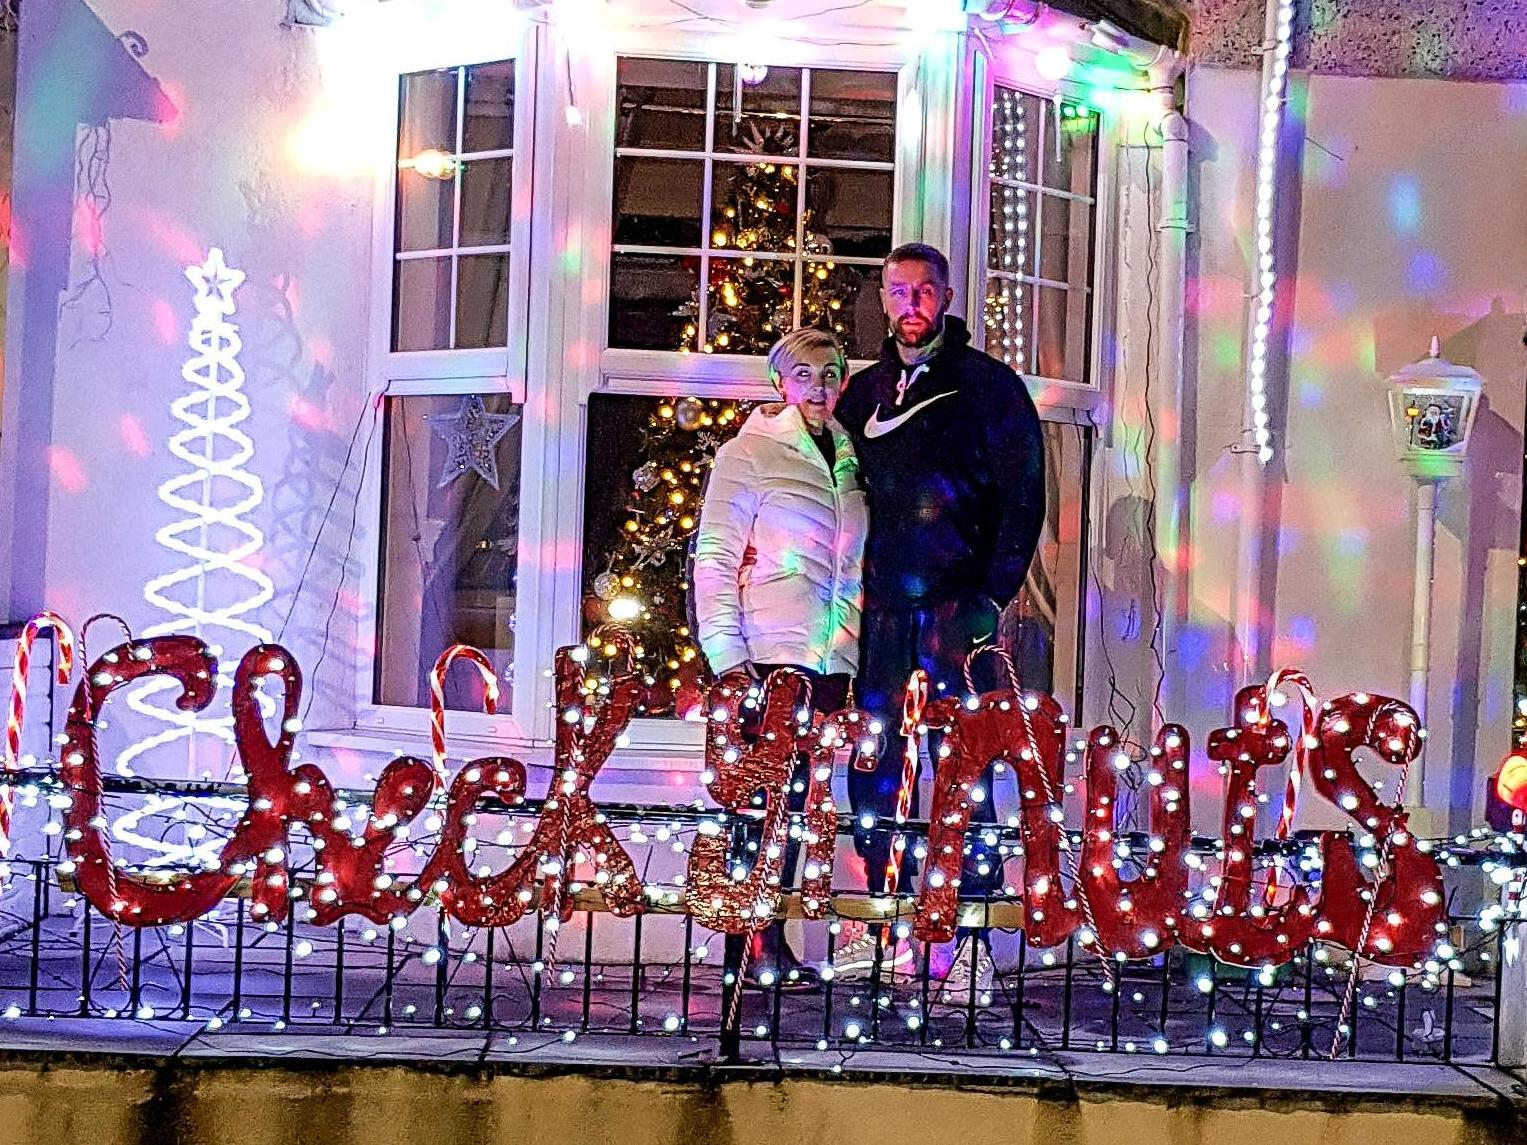 Man decorates house with 'check your nuts' Christmas lights after surviving testicular cancer